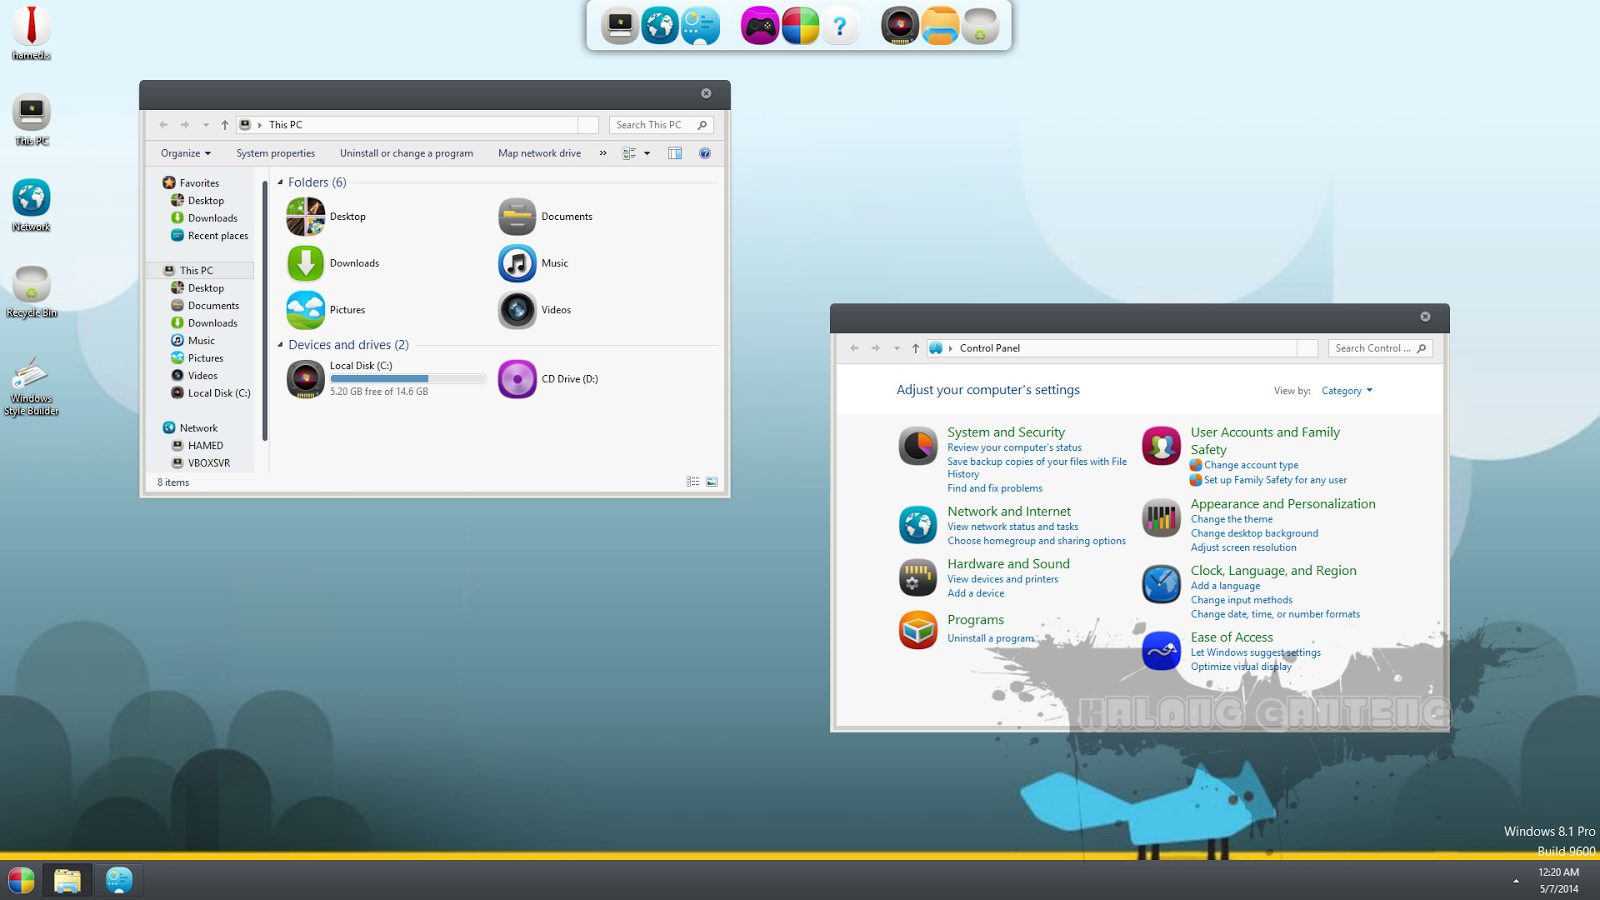 MeeGo Skin Pack for win 7 Screenshot